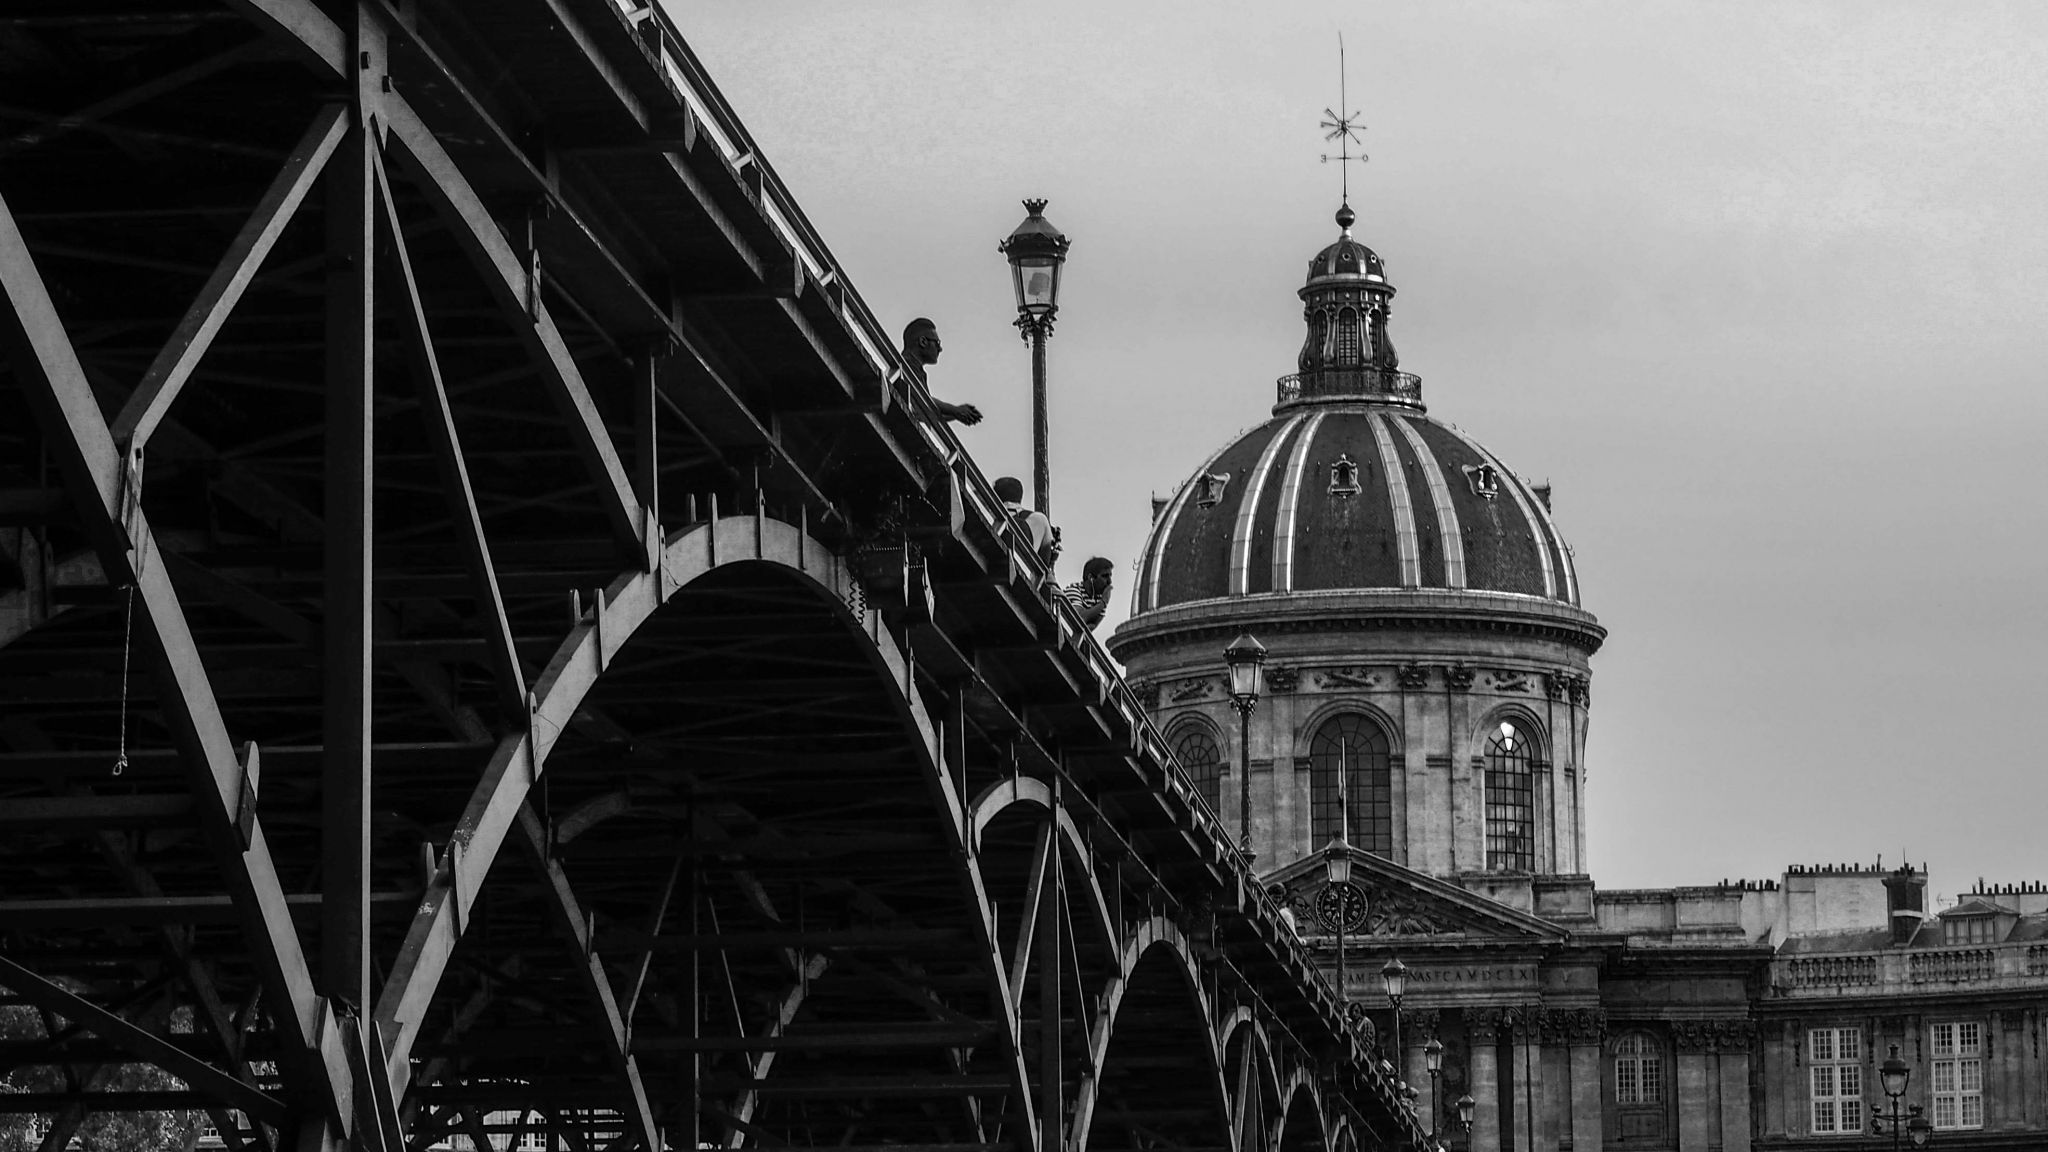 Pont des arts and institut de France, France